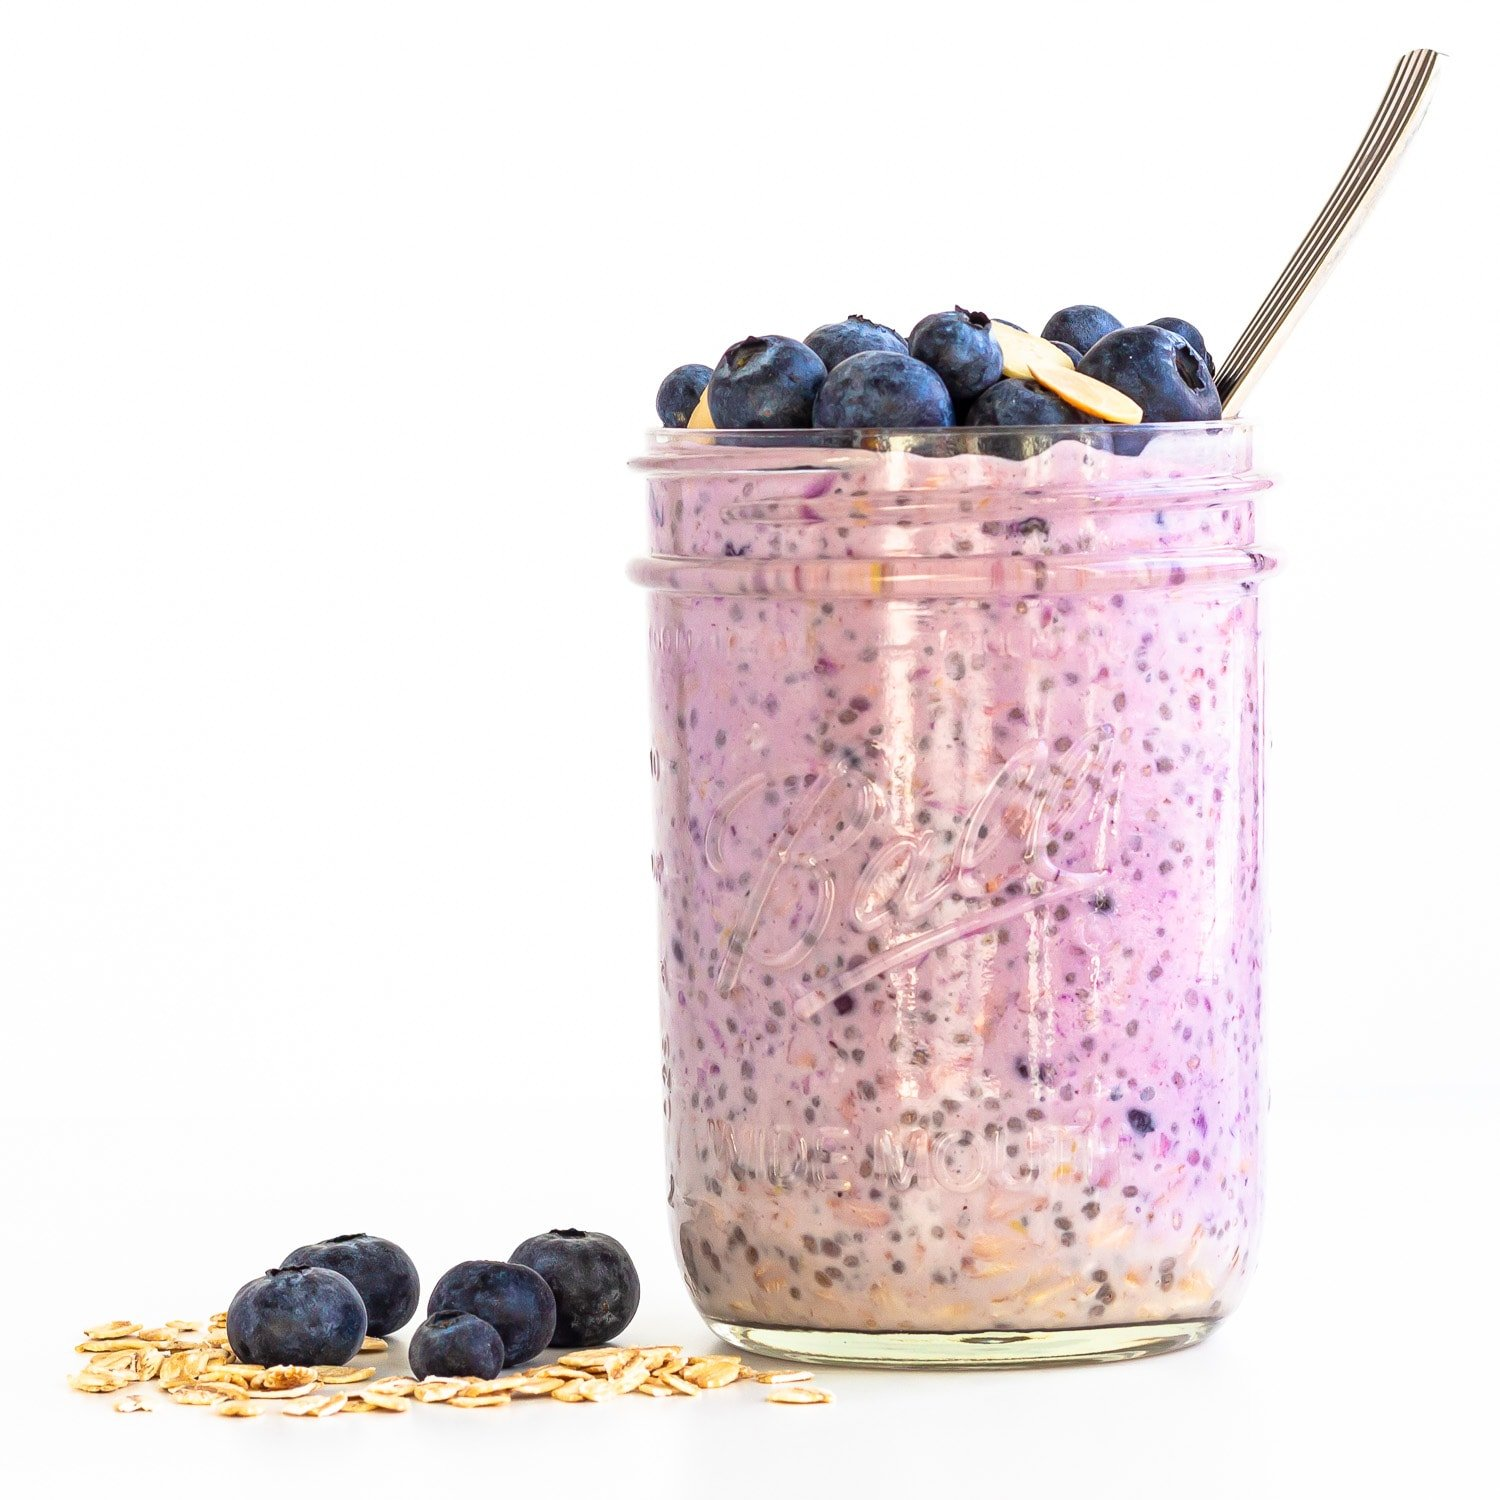 Jar of blueberry overnight oats with blueberries and rolled oats scattered next to it.